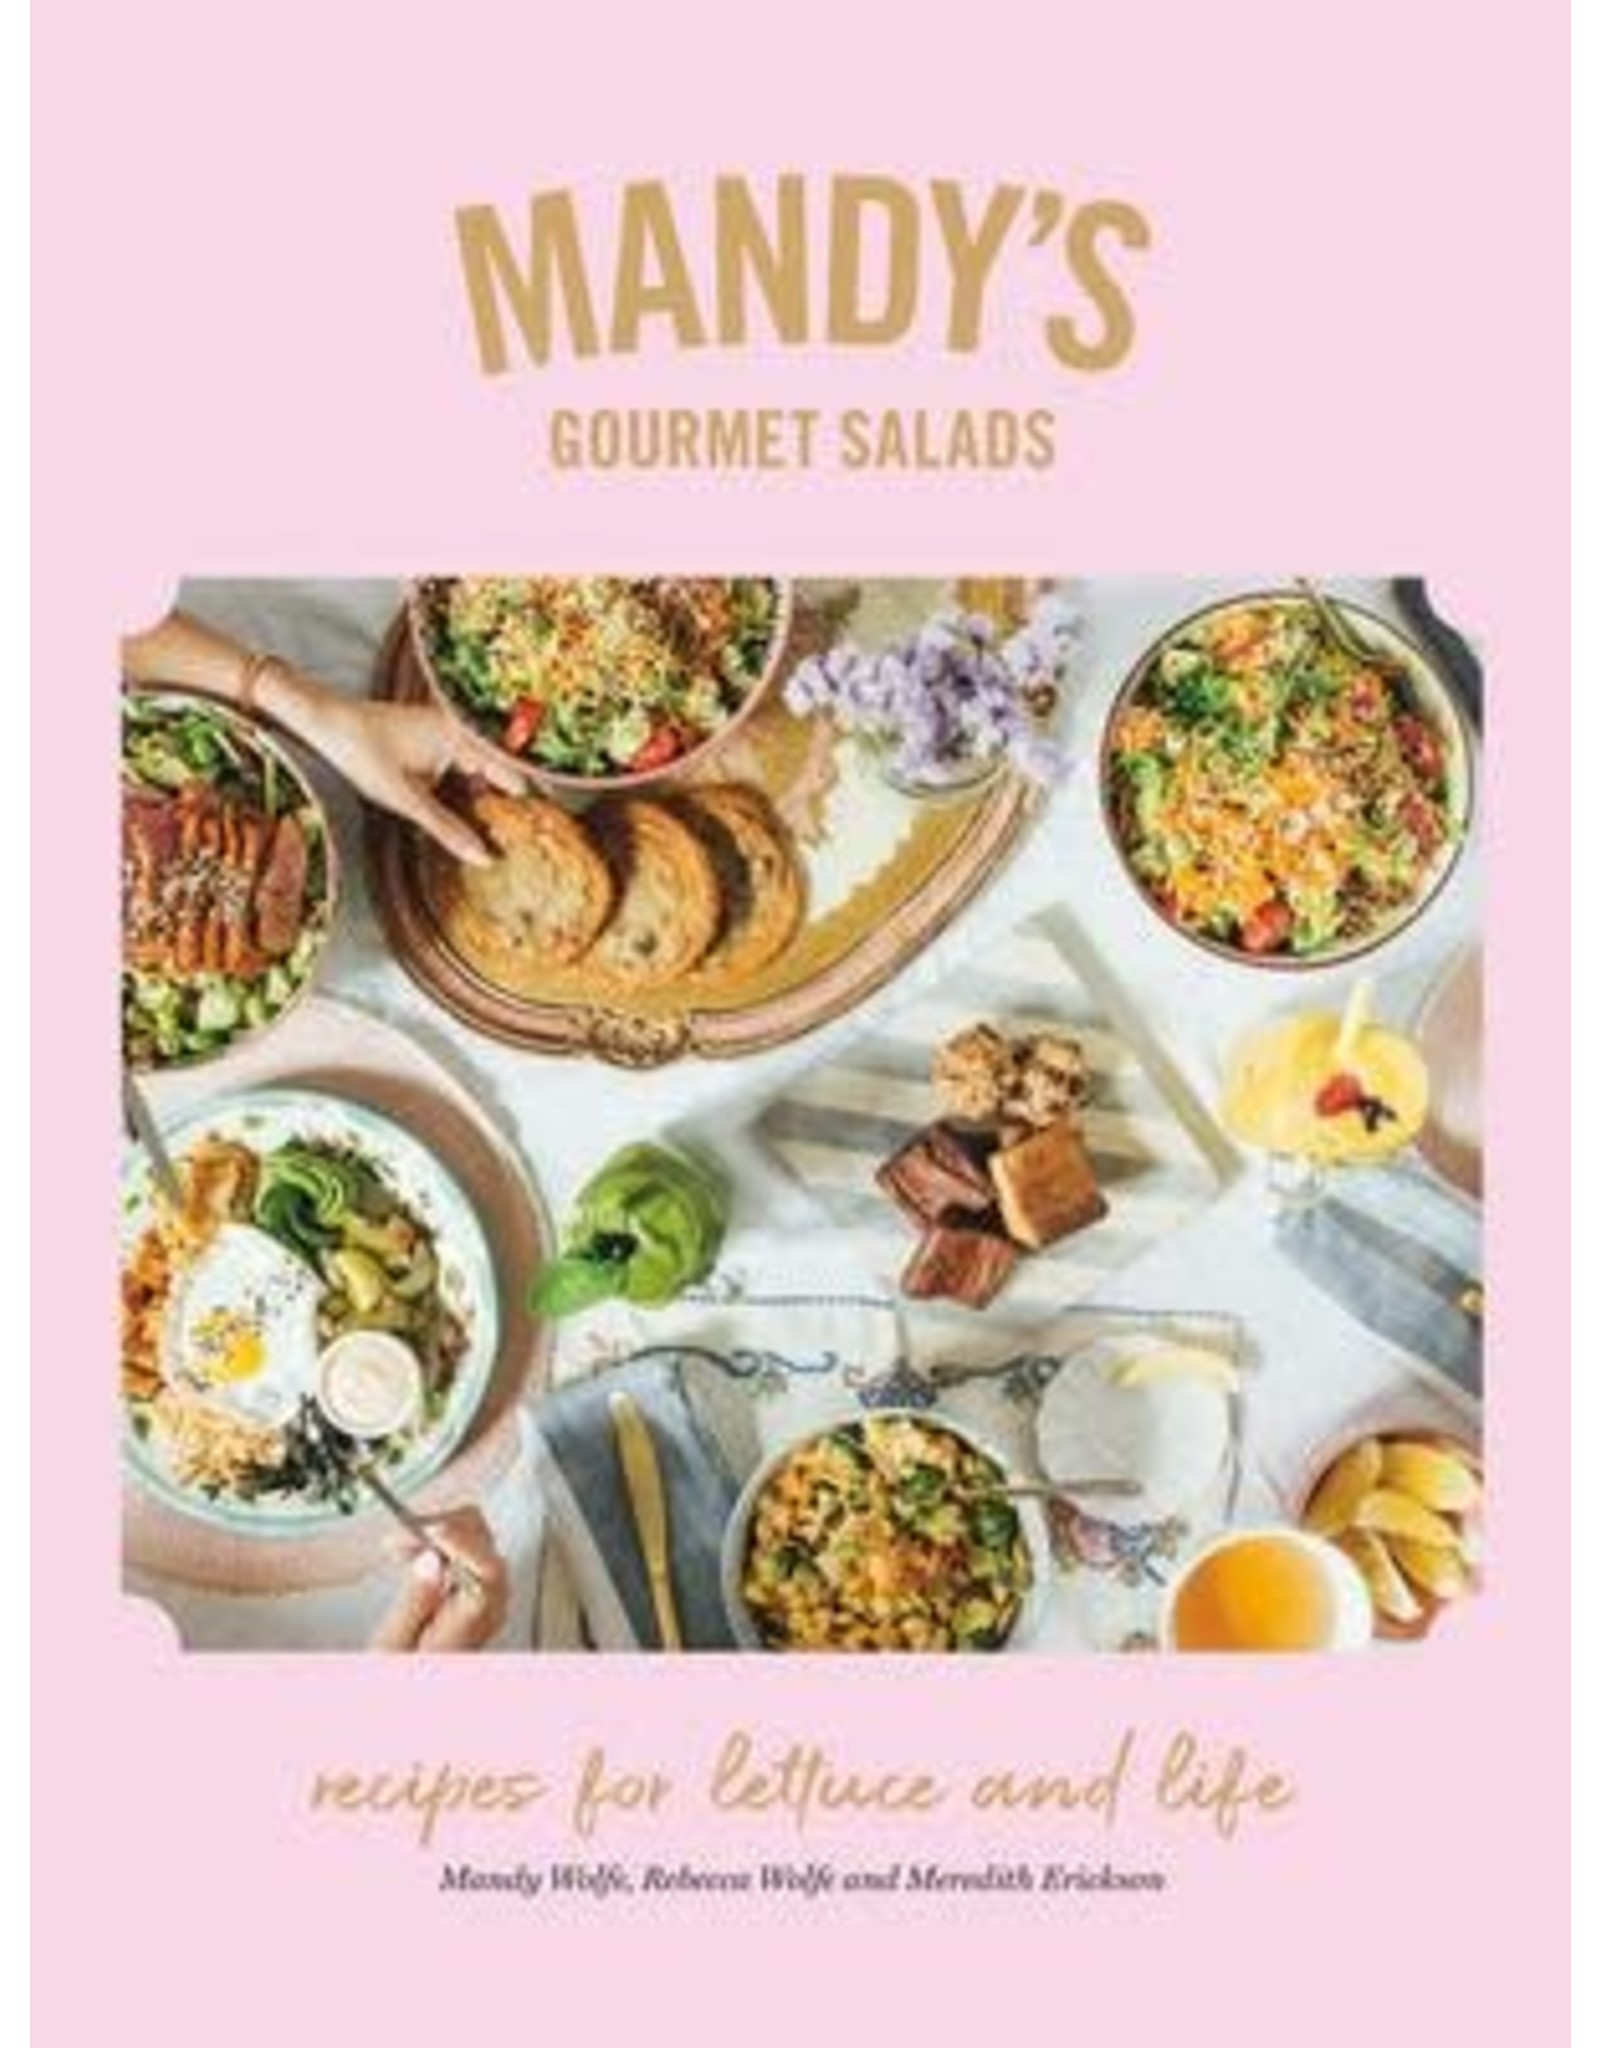 Mandy's Gourmet Salads: Recipes For Lettuce & Life